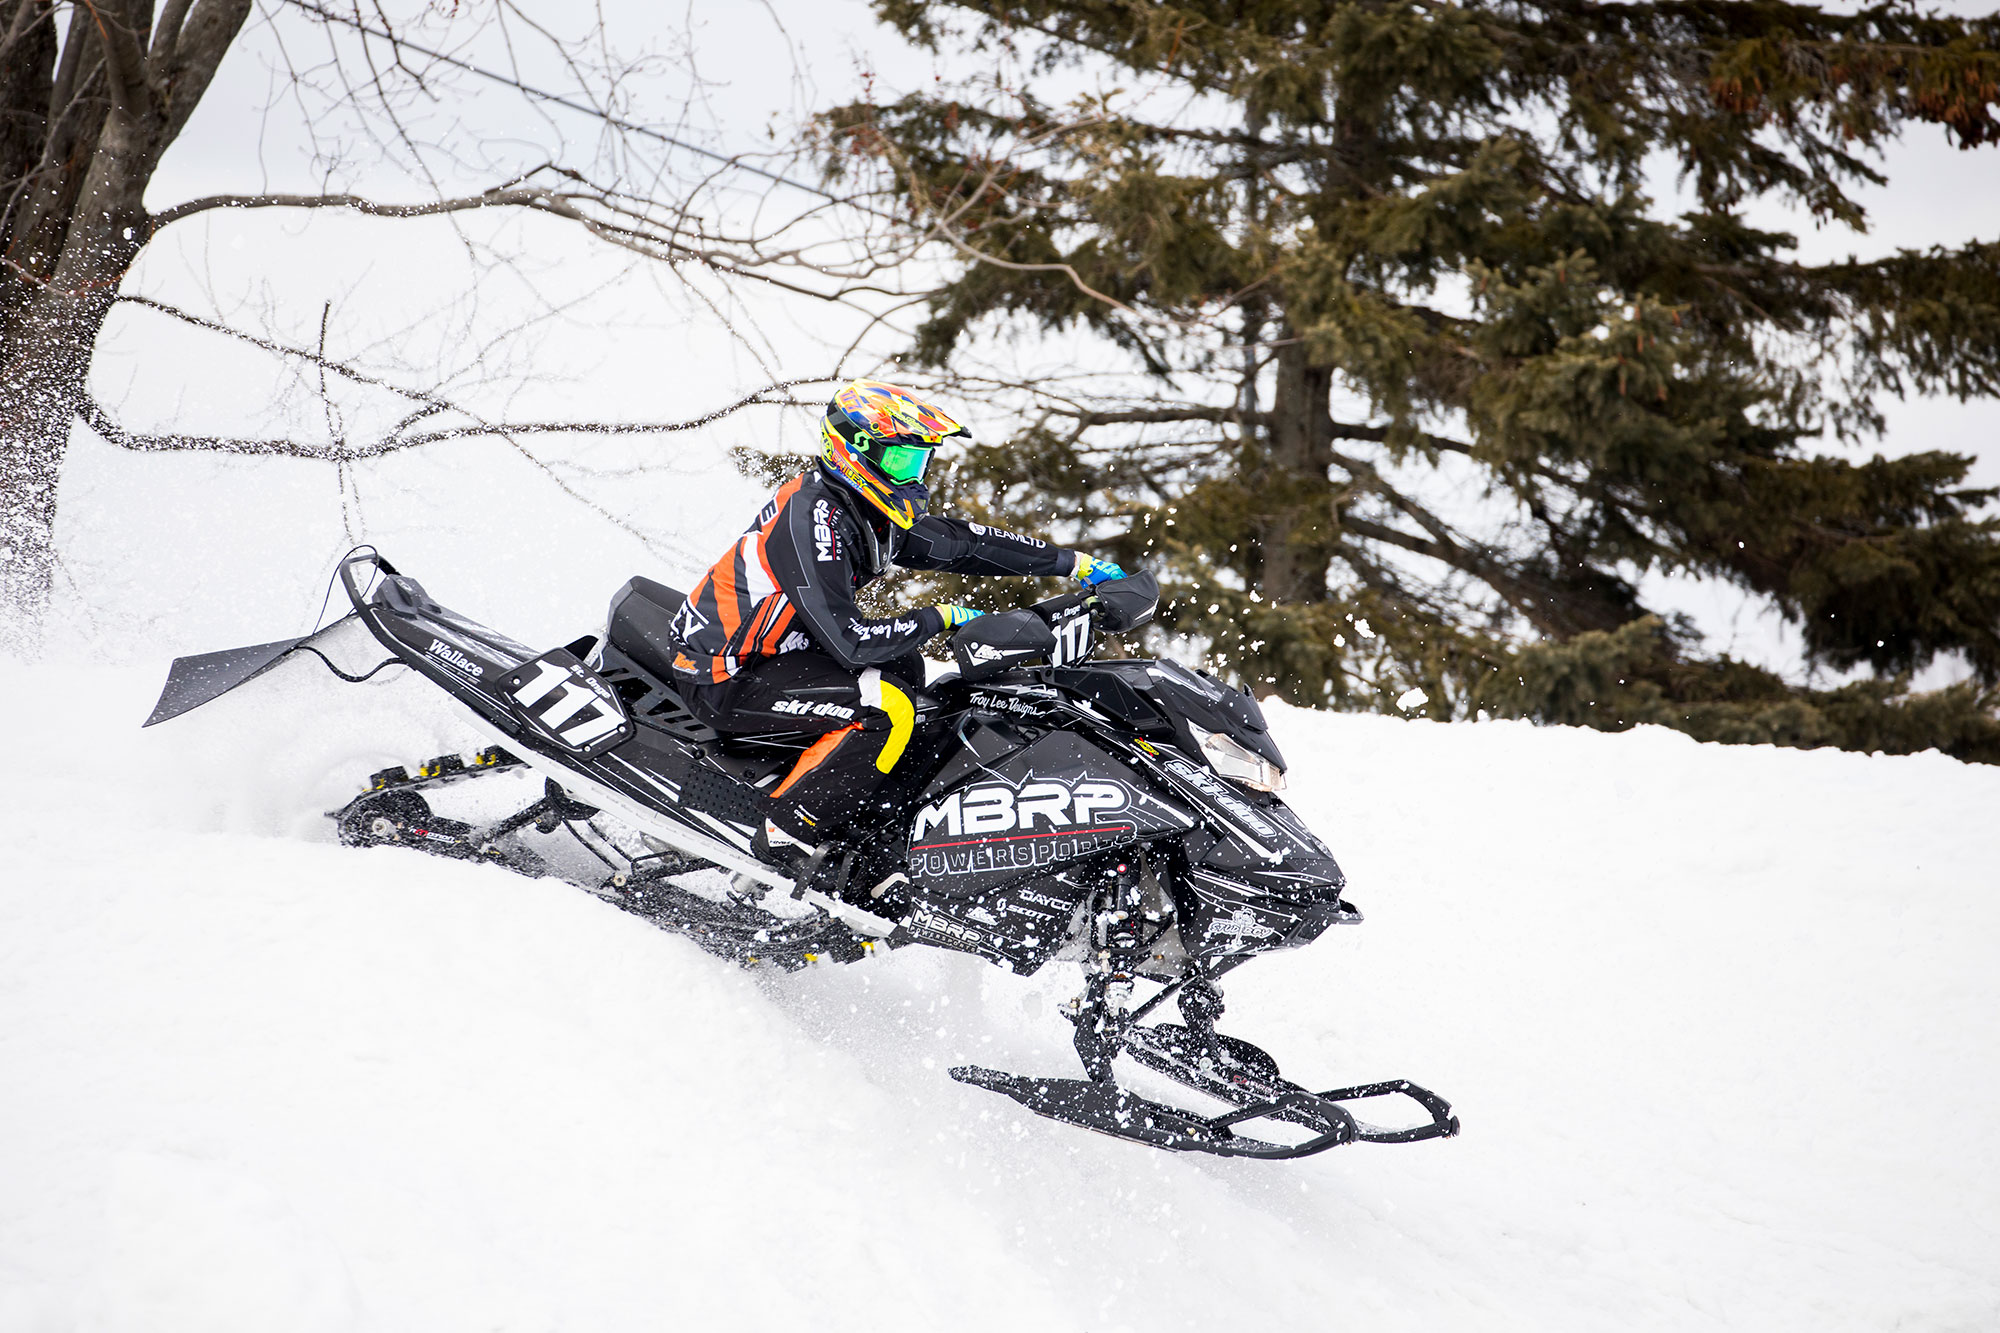 mbrp powersports race inspired trail